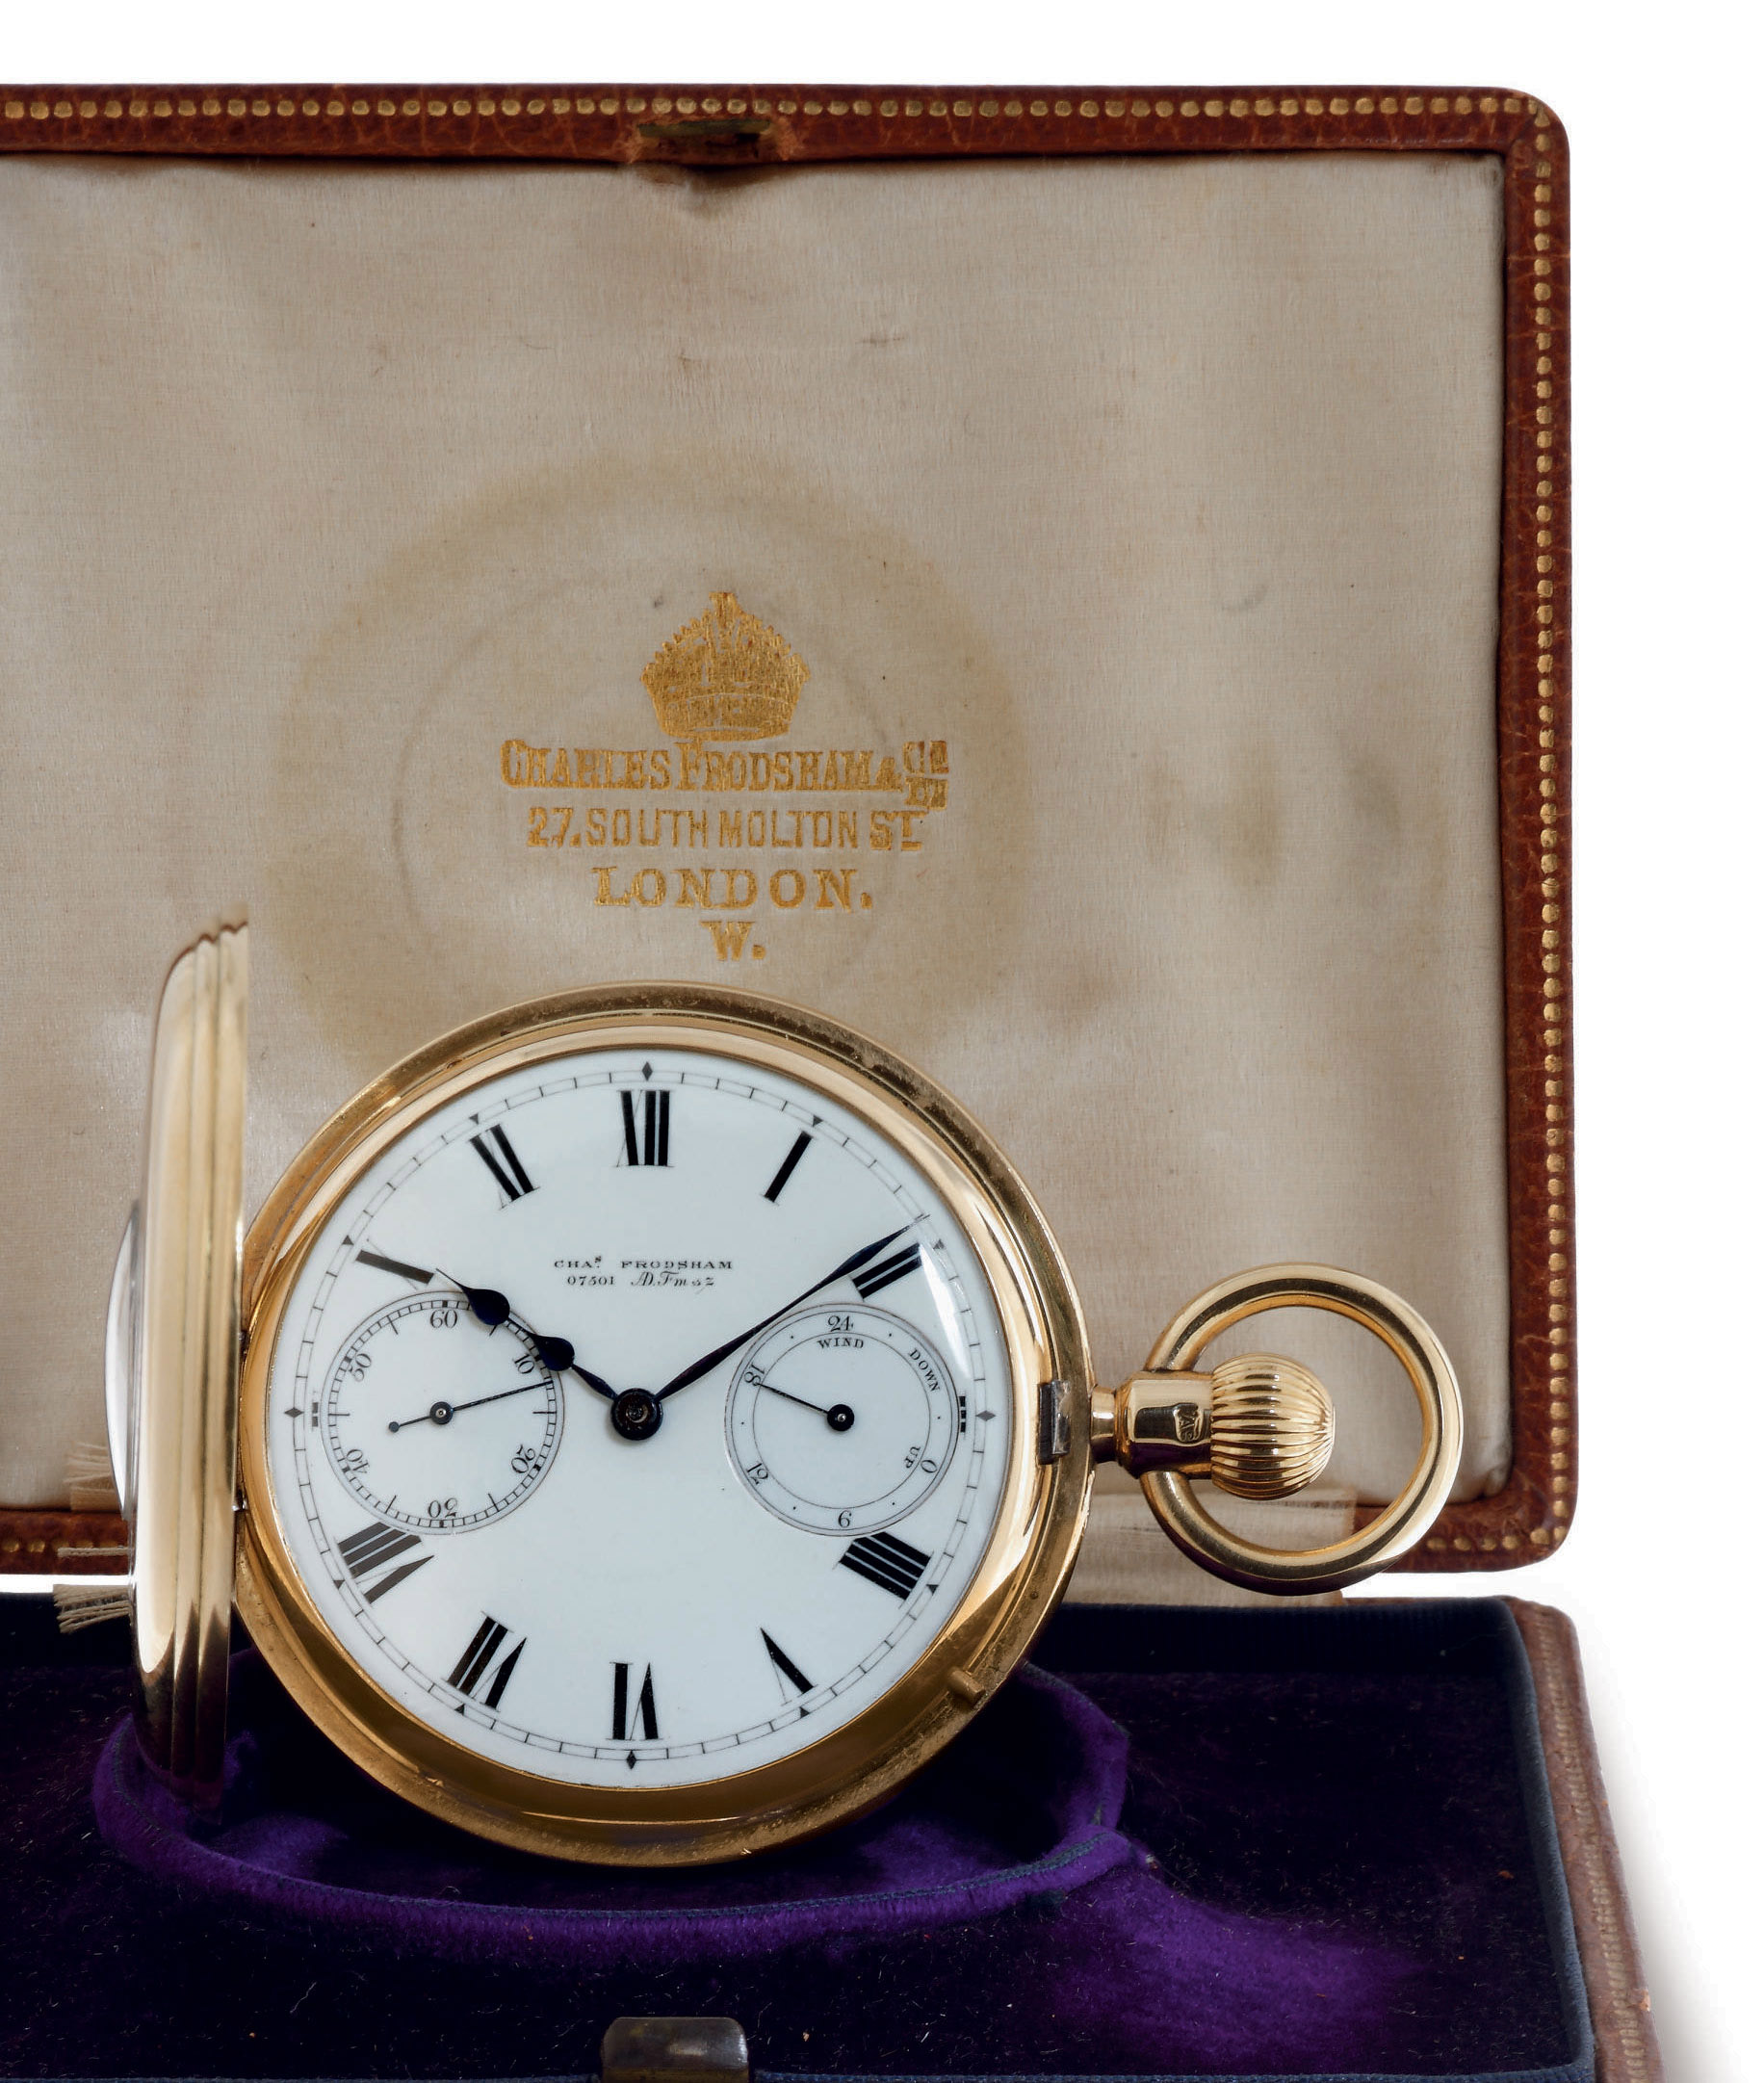 CHARLES FRODSHAM. A RARE 18K GOLD HALF HUNTER CASE POCKET CHRONOMETER WITH UP-AND-DOWN INDICATOR